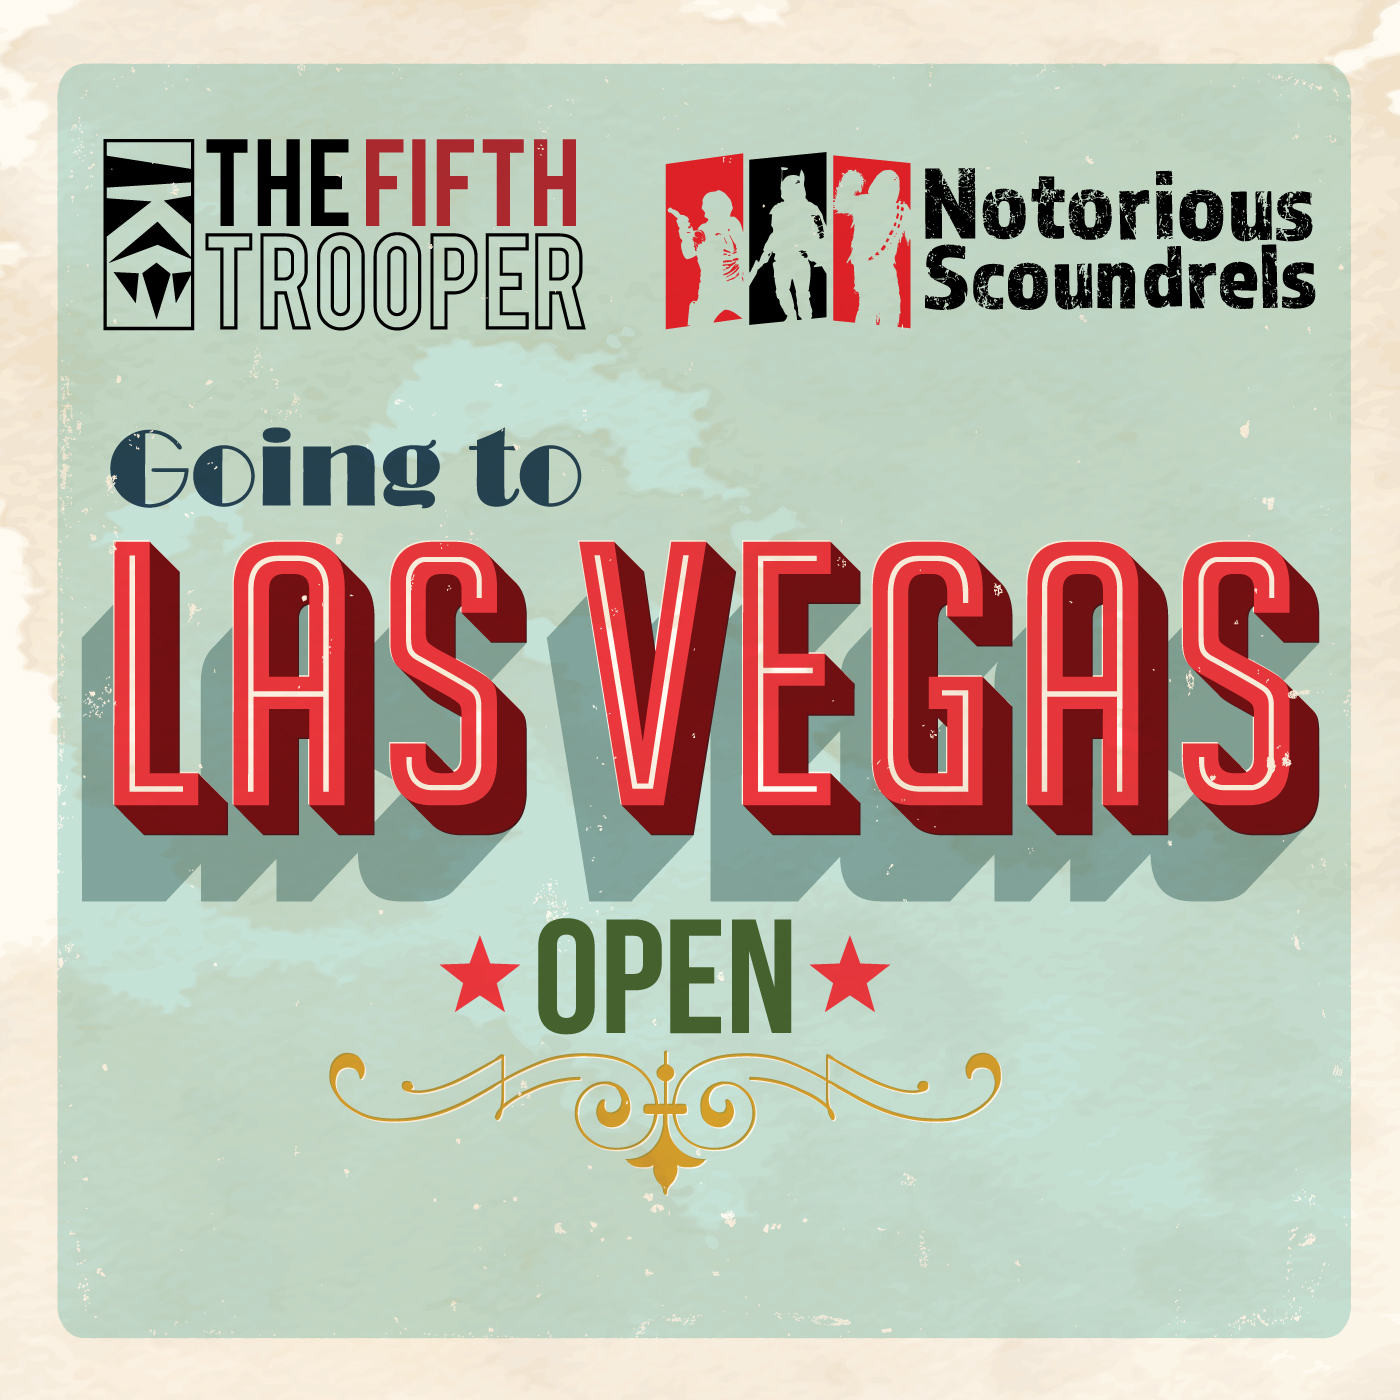 Notorious Scoundrels & The Fifth Trooper are Going to Vegas